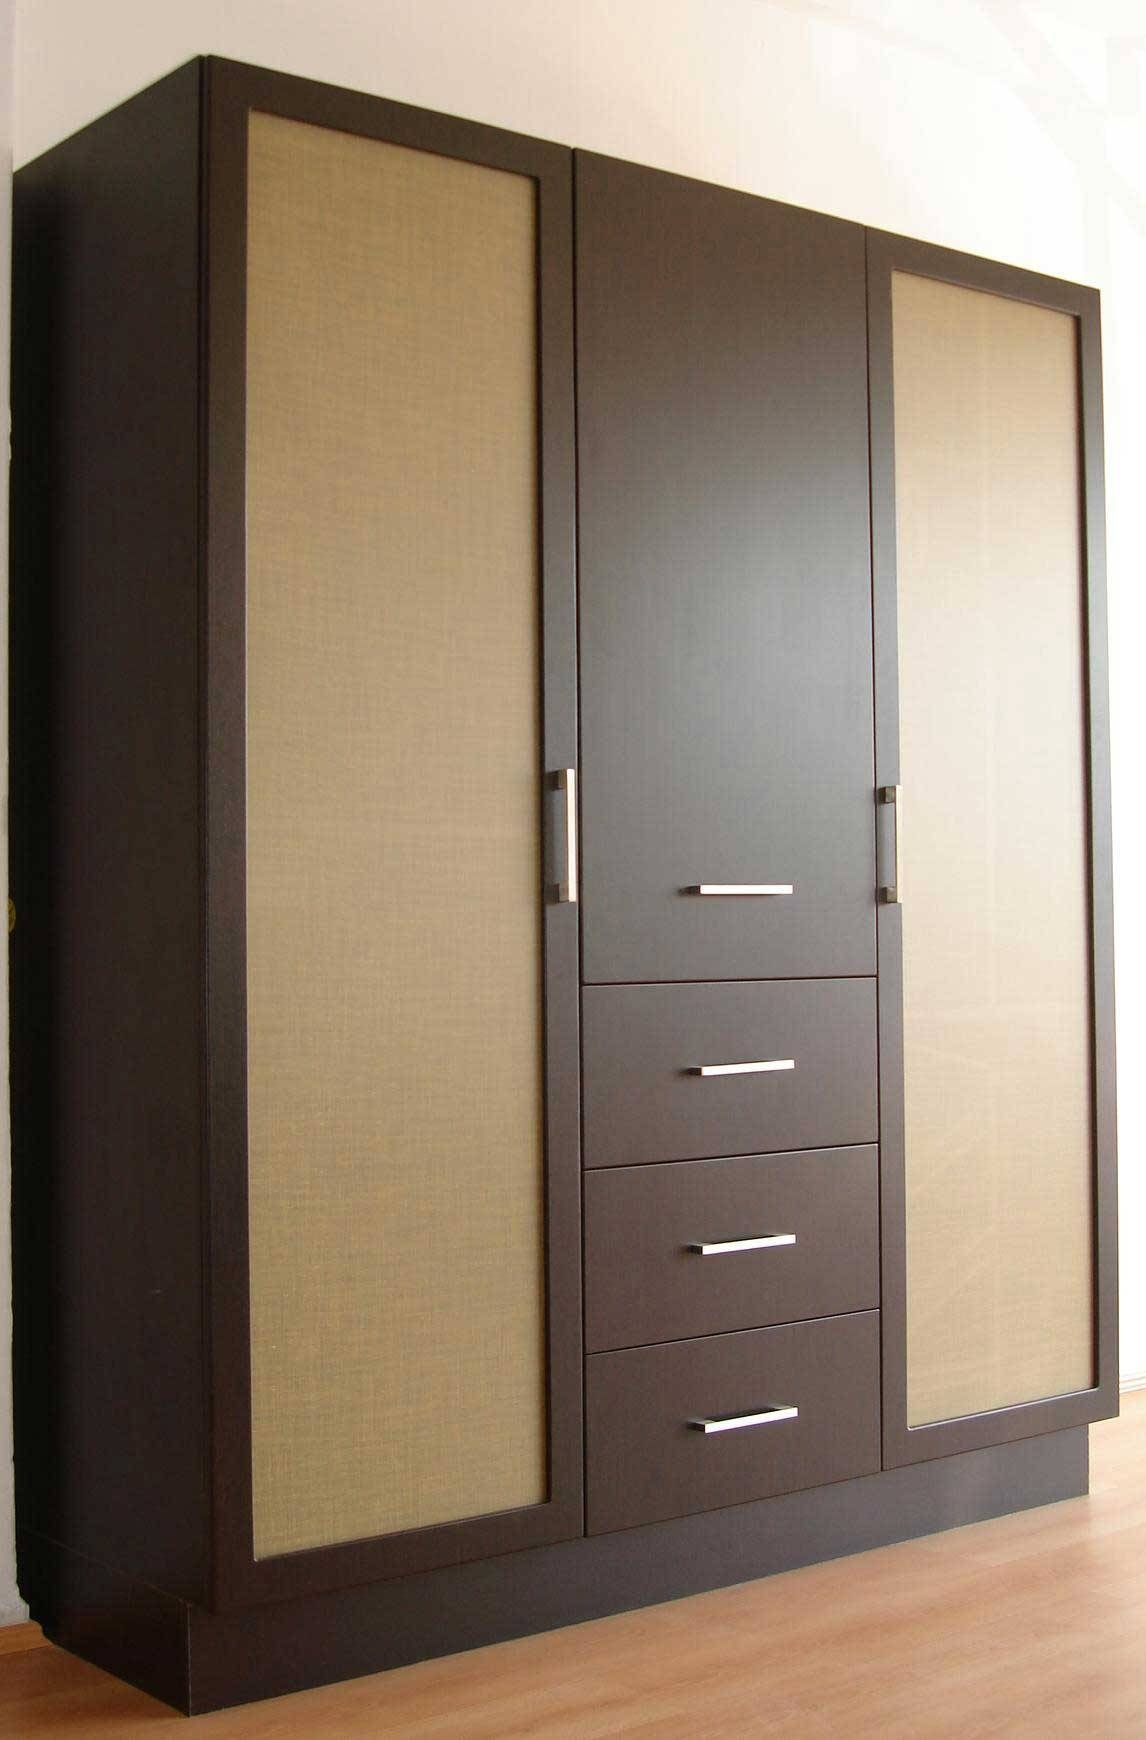 Dark Brown Stained Wooden Wardrobe With Door Panel Also Having regarding Dark Wood Wardrobe With Drawers (Image 10 of 30)